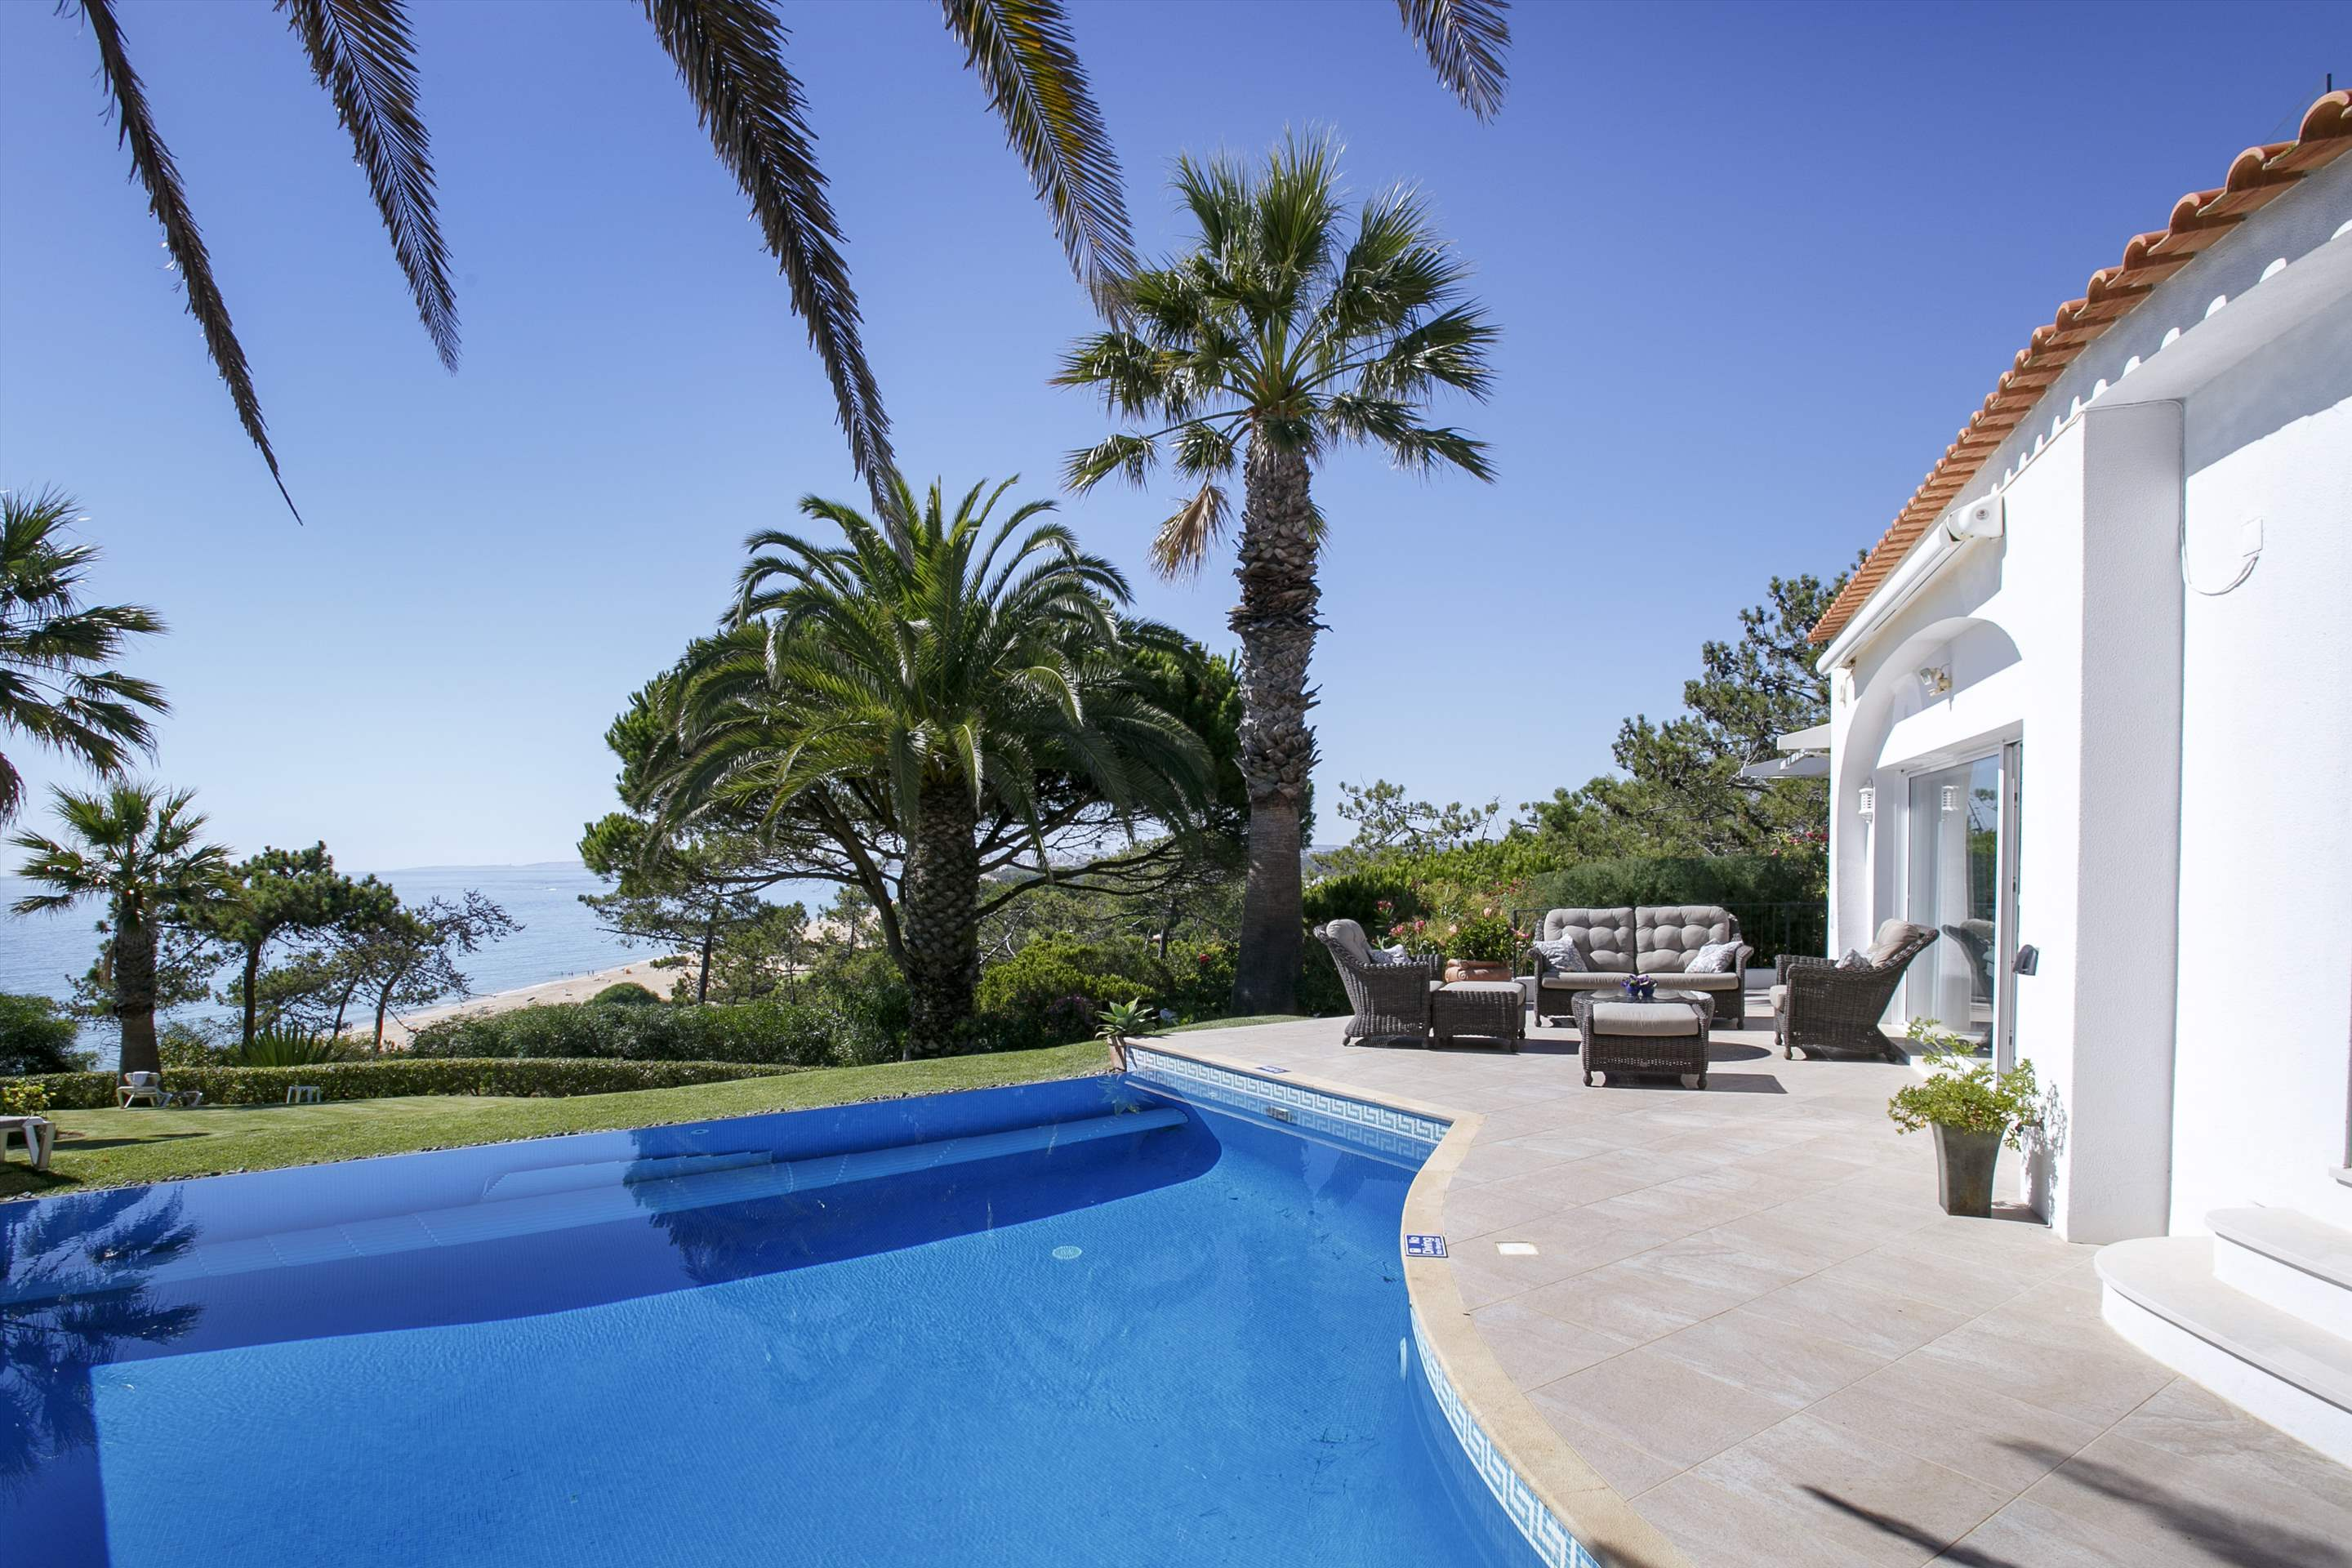 Villa Ocean Beach, 4 bedroom villa in Vale do Lobo, Algarve Photo #2